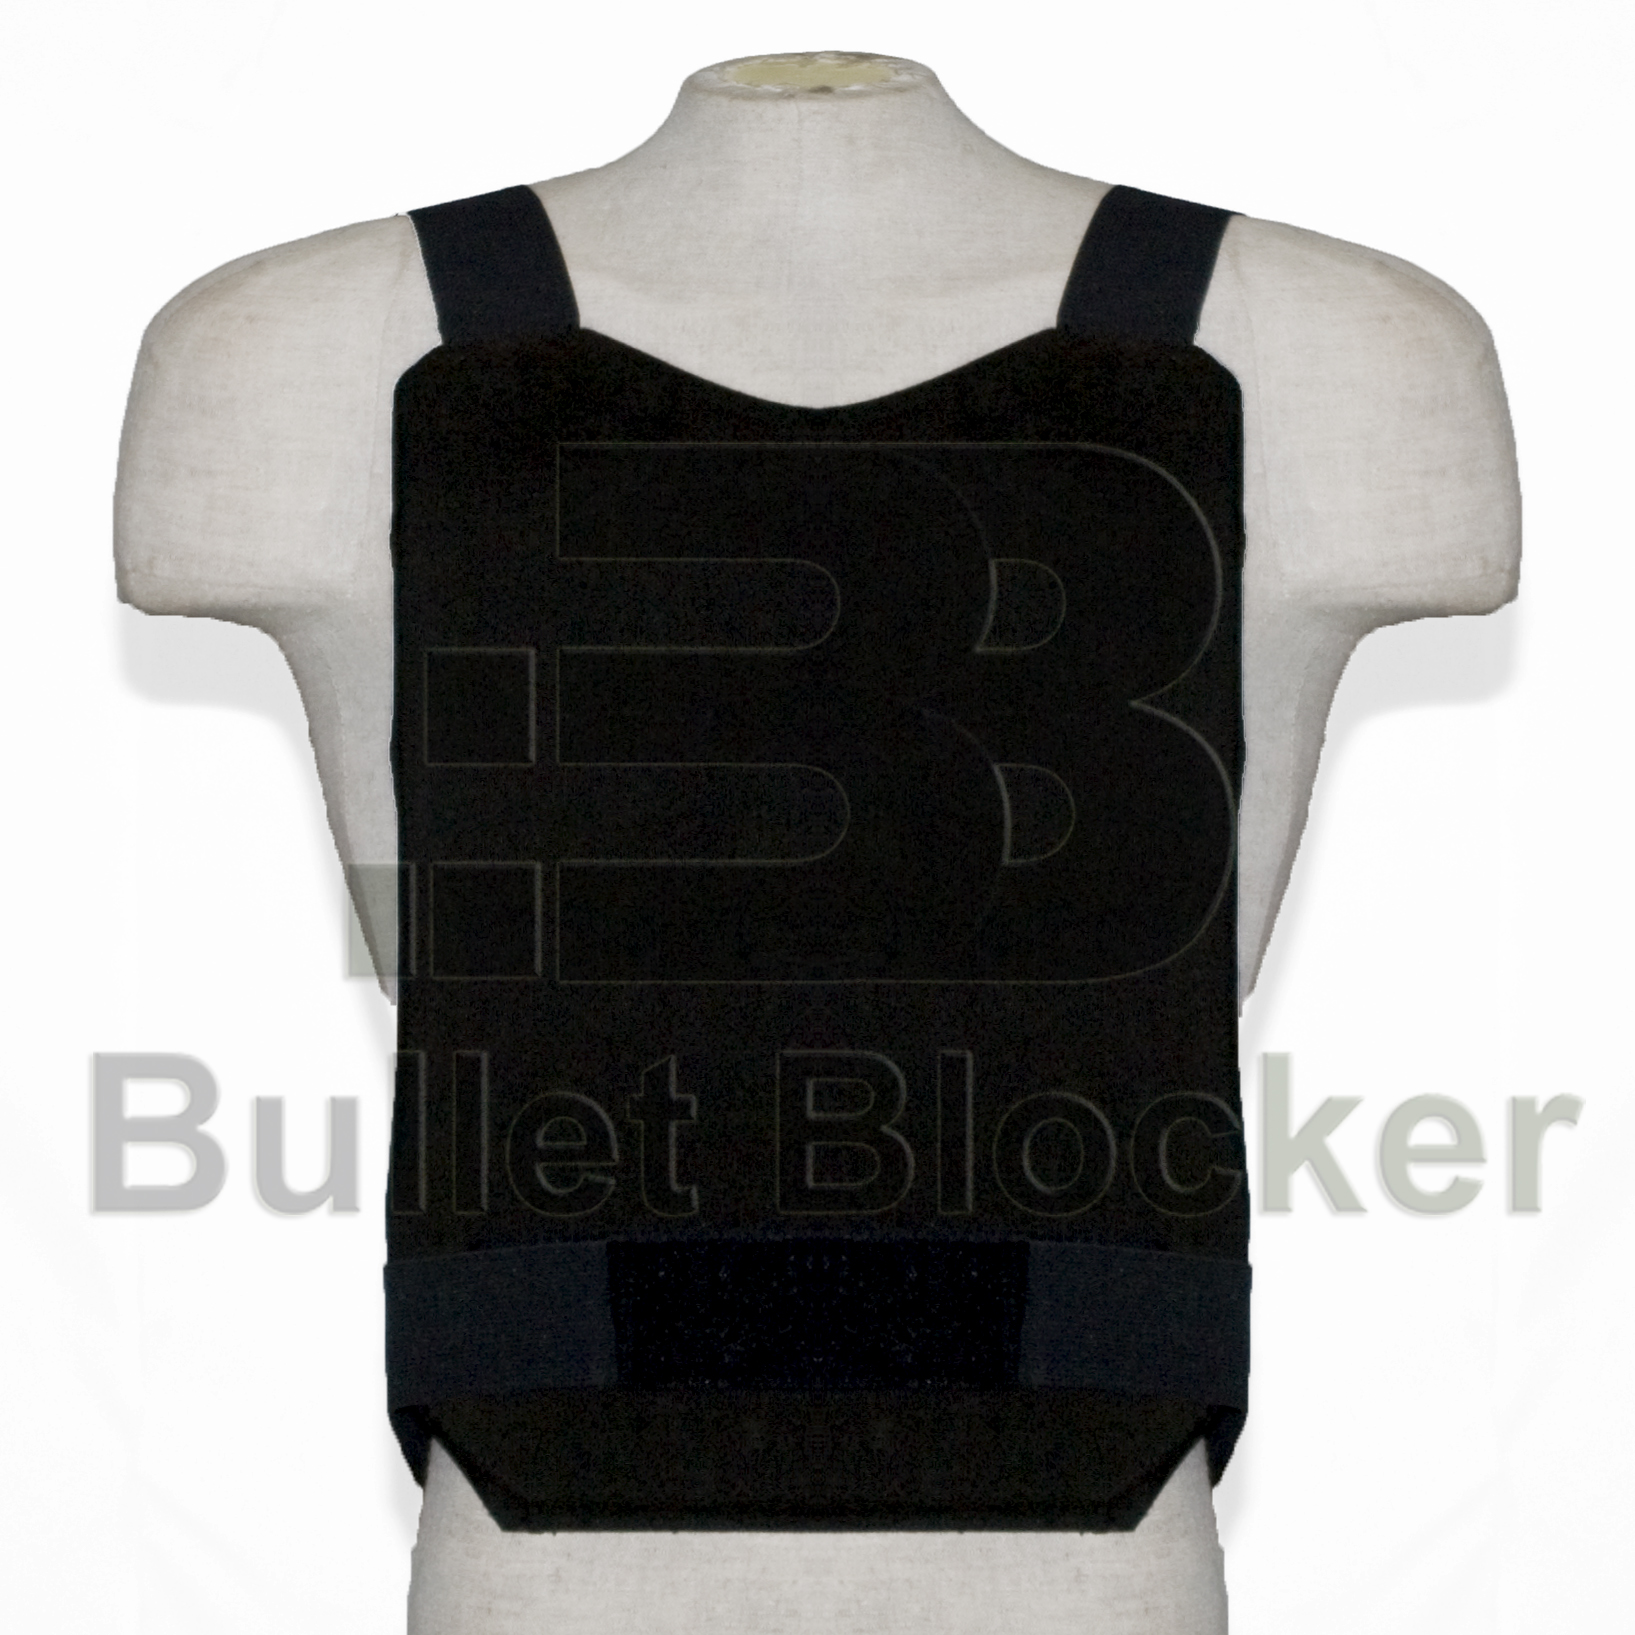 Bulletproof Executive Concealment Vest